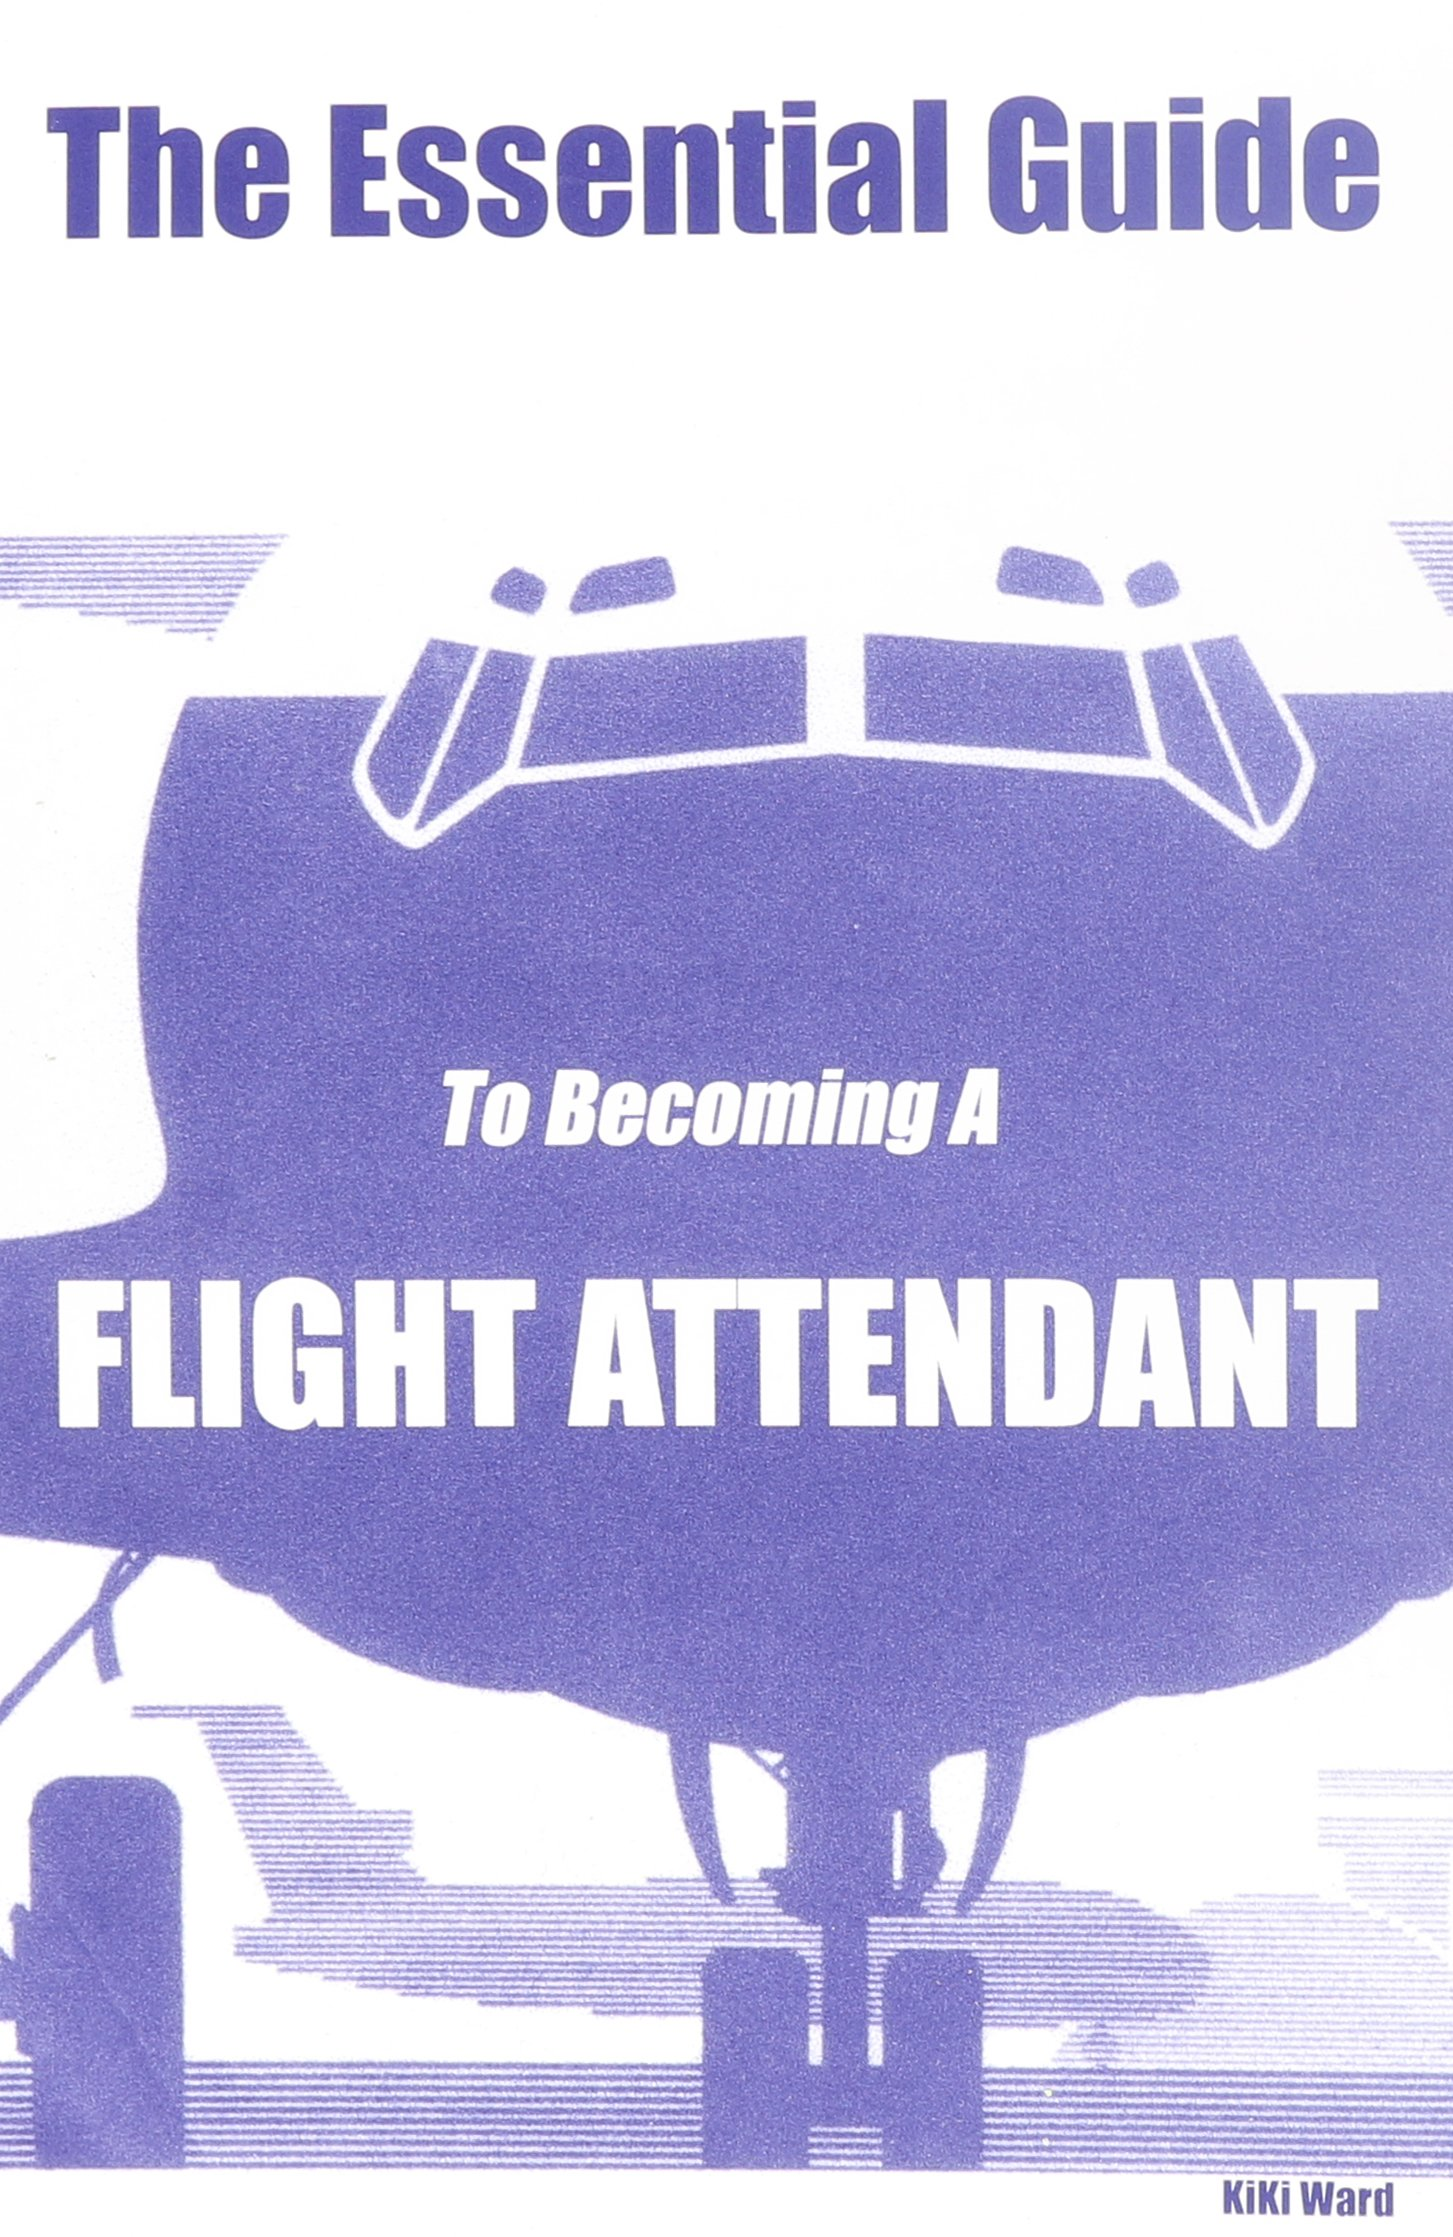 the essential guide to becoming a flight attendant kiki ward the essential guide to becoming a flight attendant kiki ward 9780970184320 com books